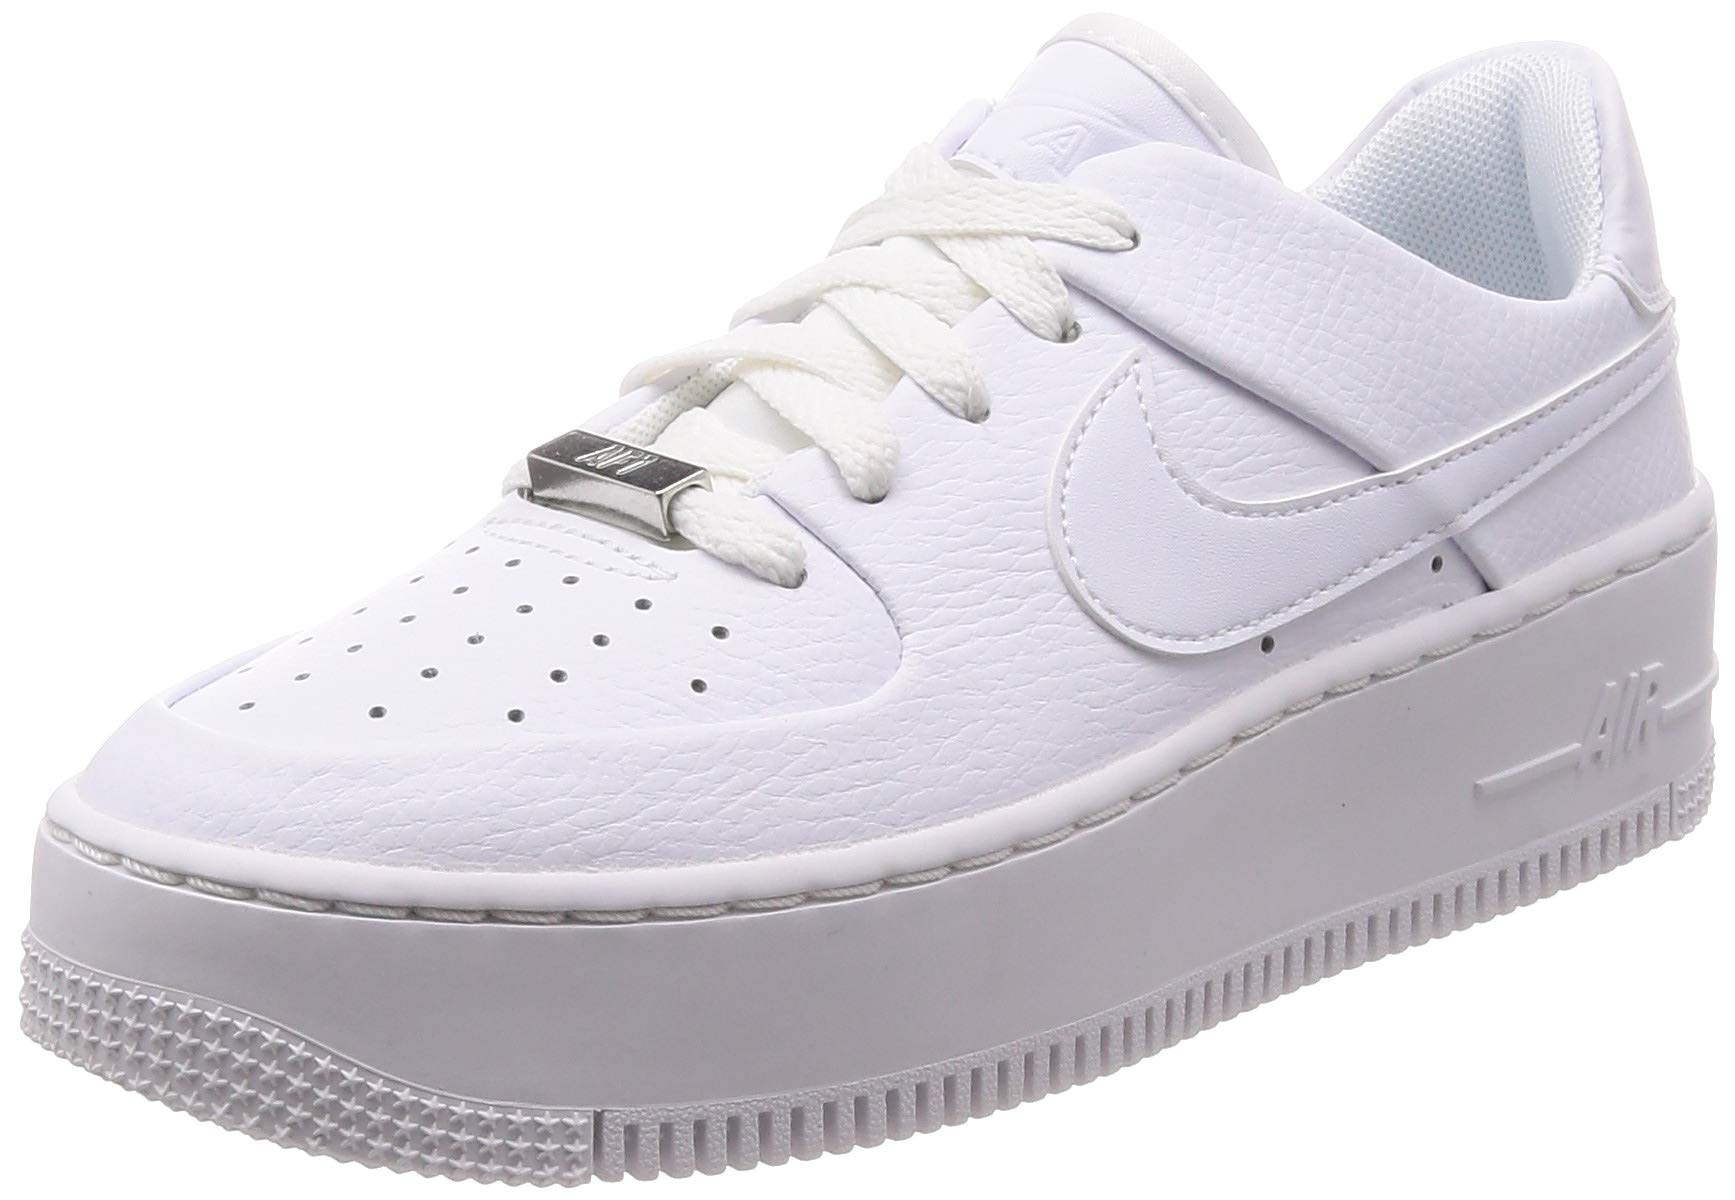 Galleon - Nike Air Force 1 Sage Low Women s Shoes White White Ar5339-100  (10.5 B(M) US) 77d9b4162